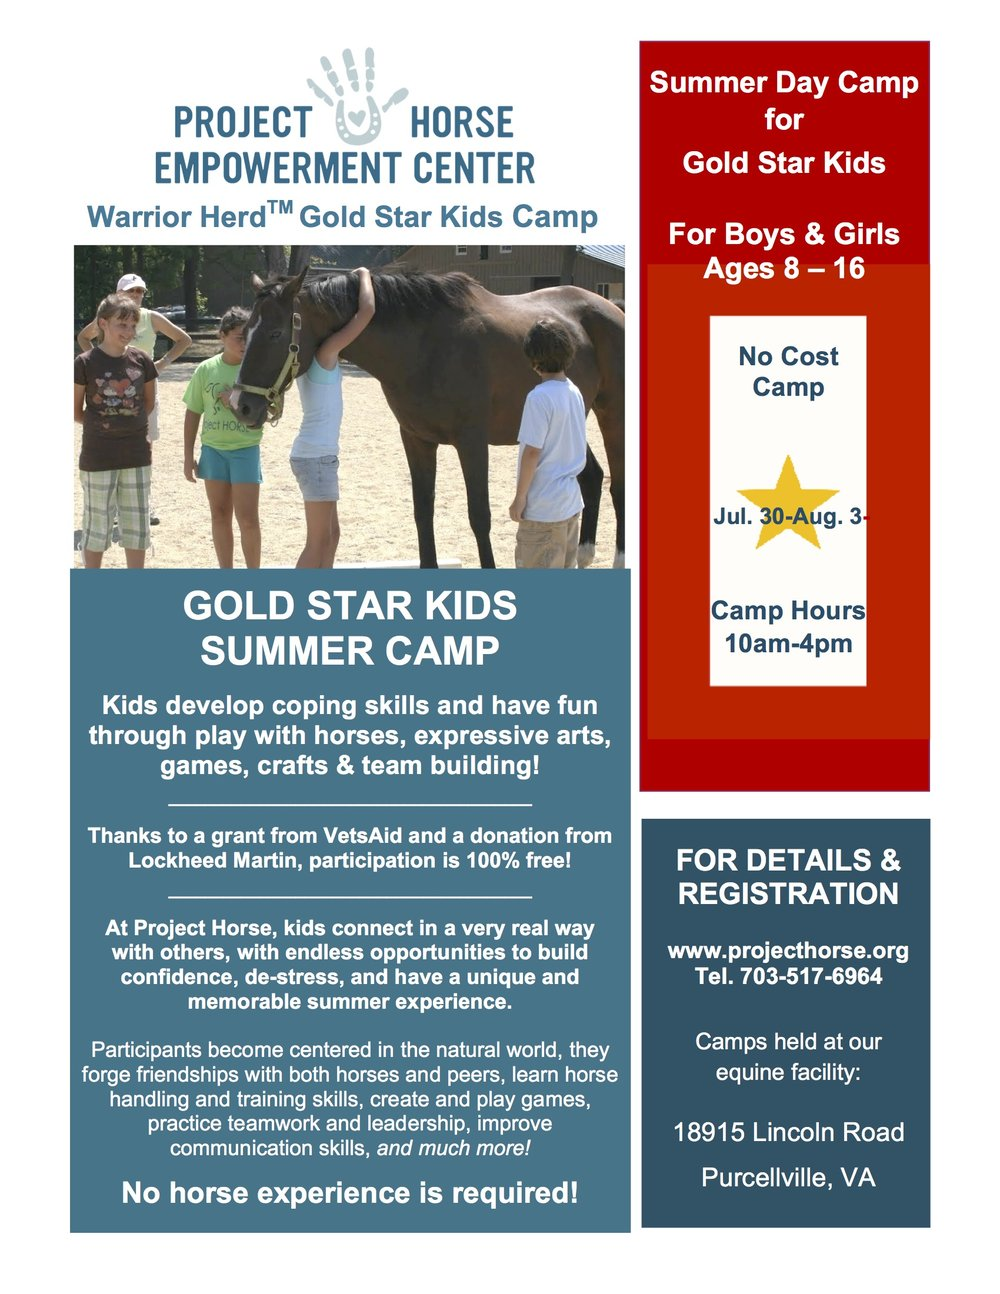 Gold Star Warrior Herd Camp_Project Horse_July2018.jpg